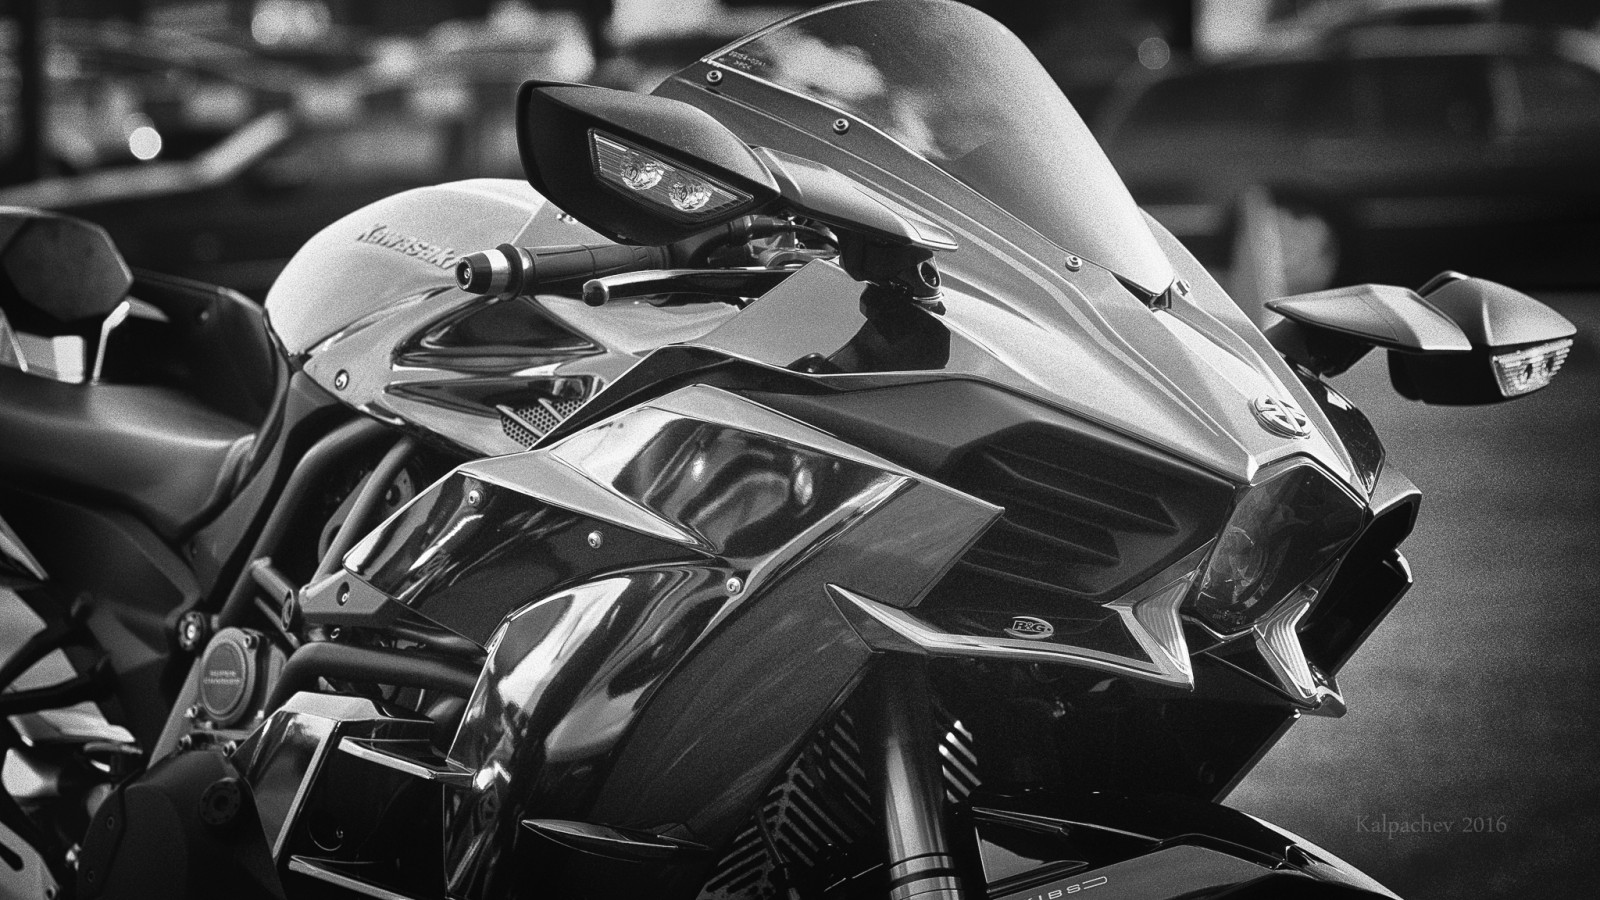 Kawasaki Ninja H2 Ace Cafe London